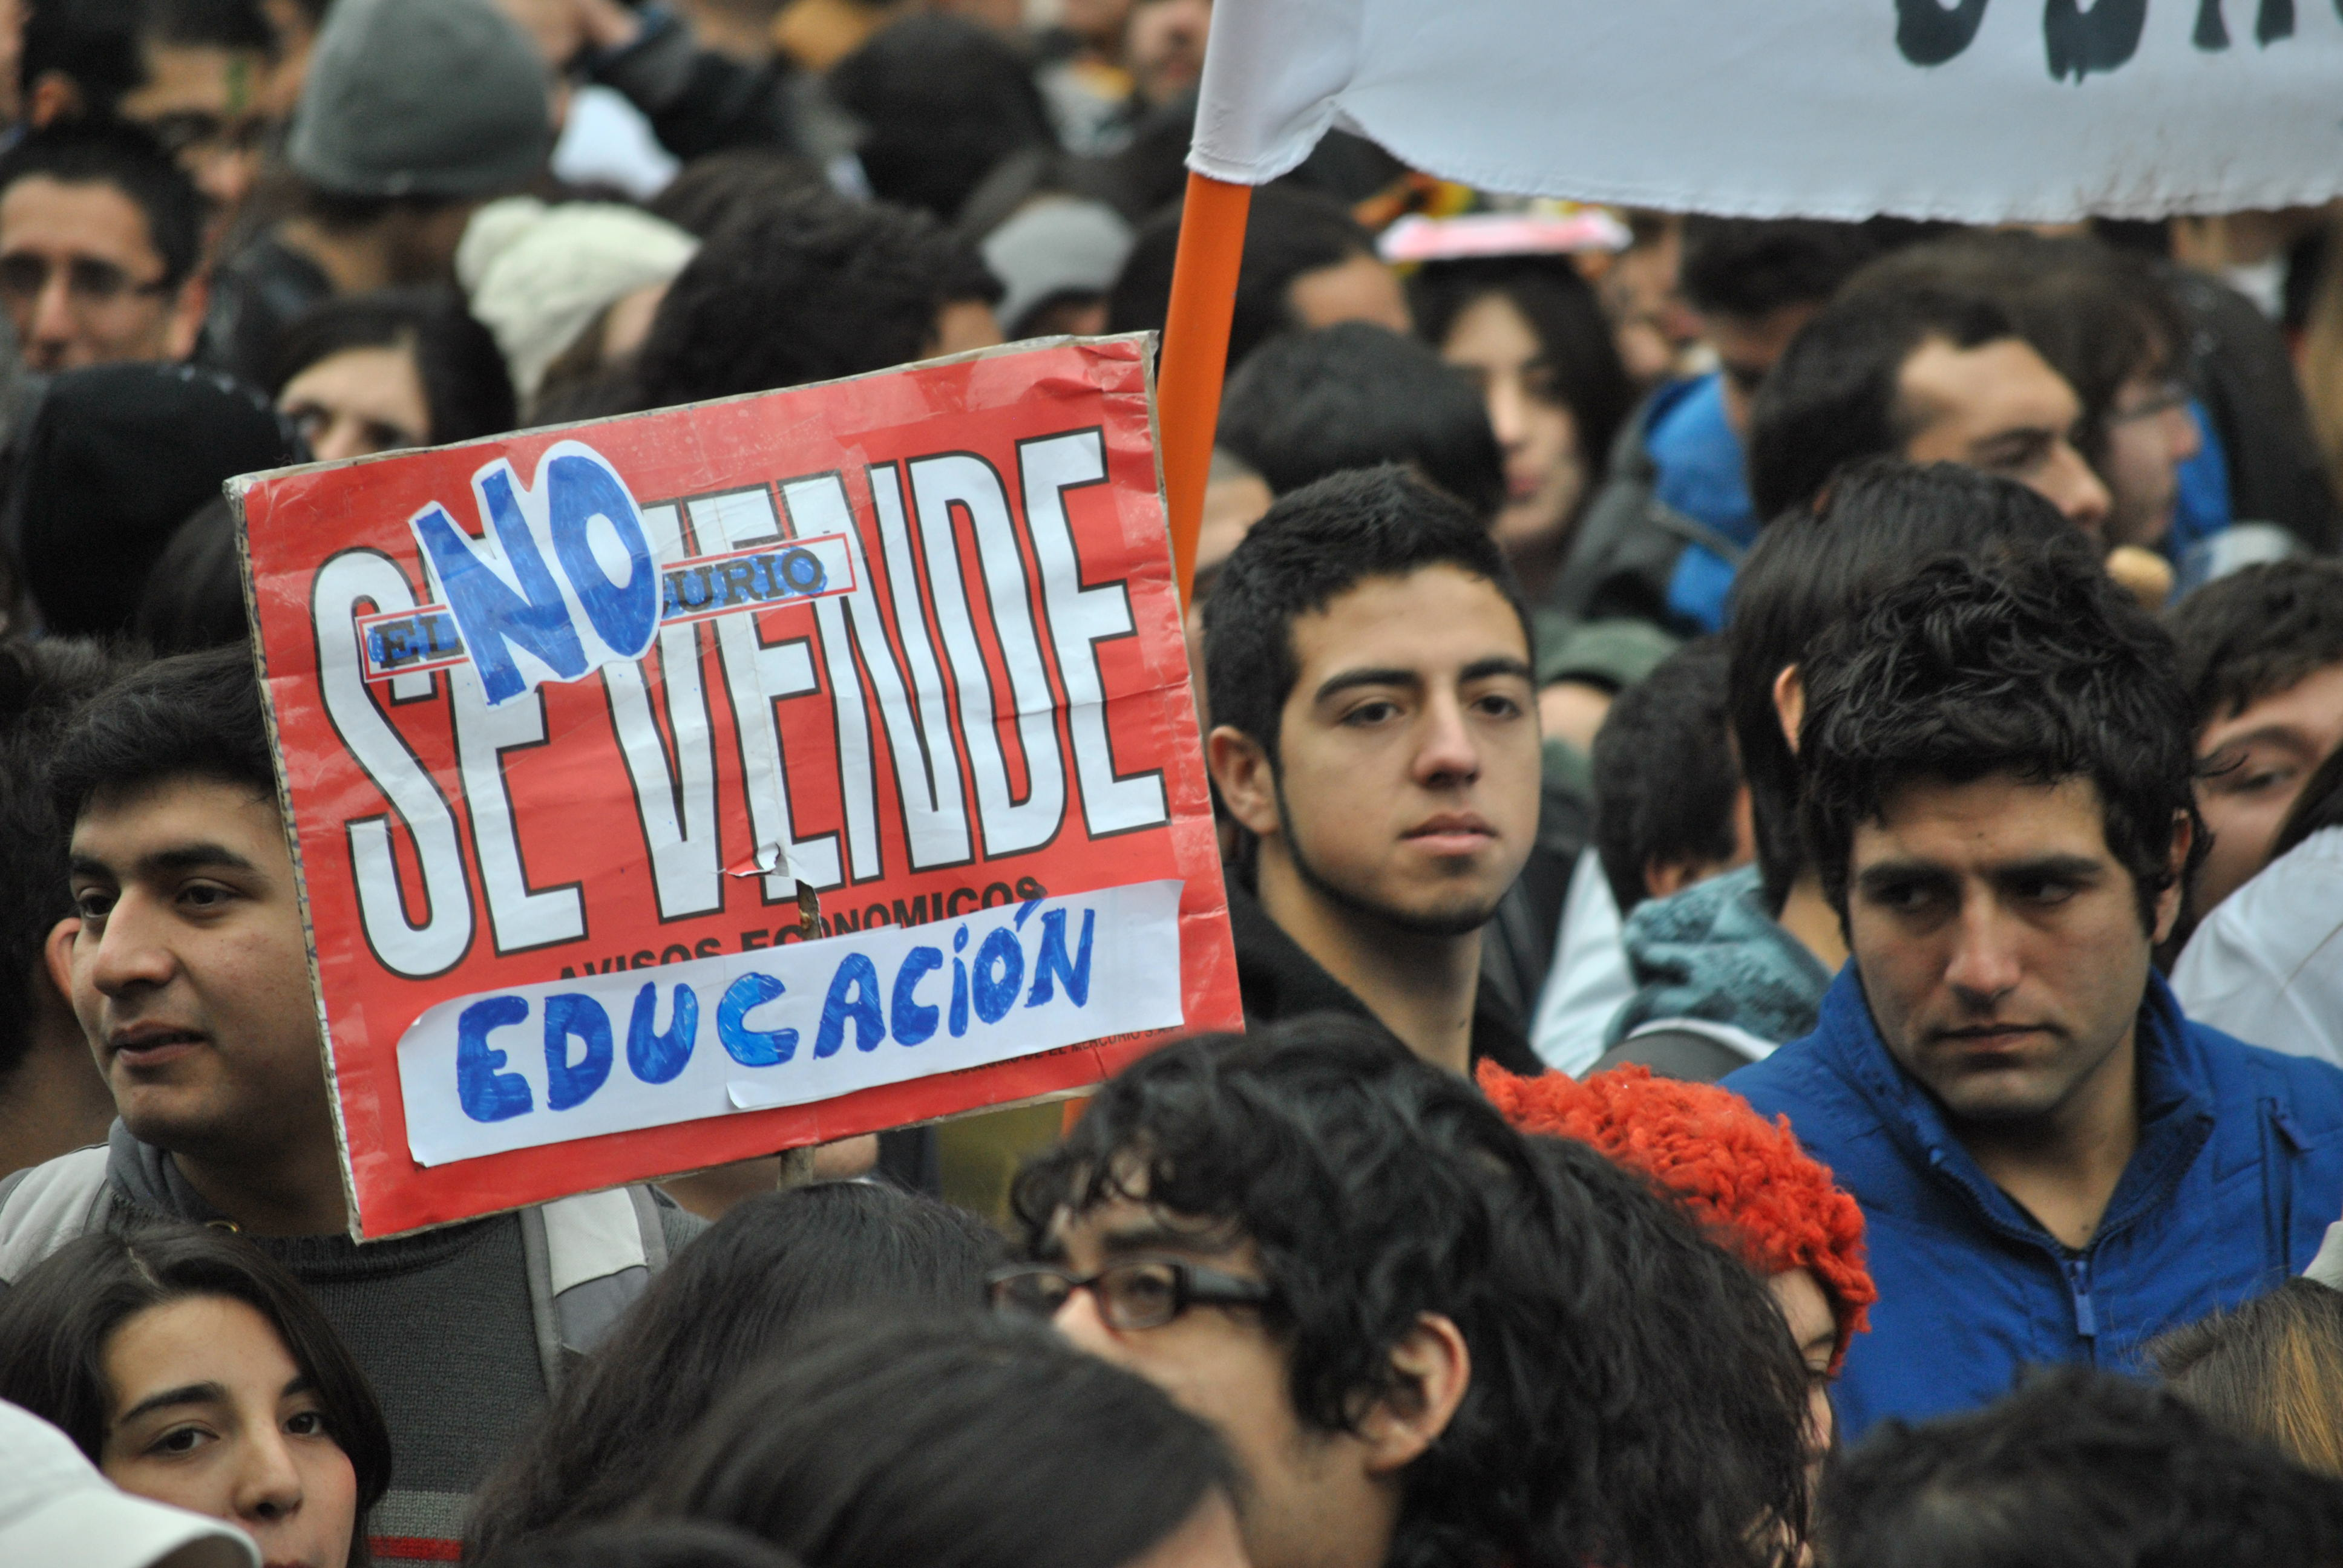 Chilean students with sign, saying Education is not for sale